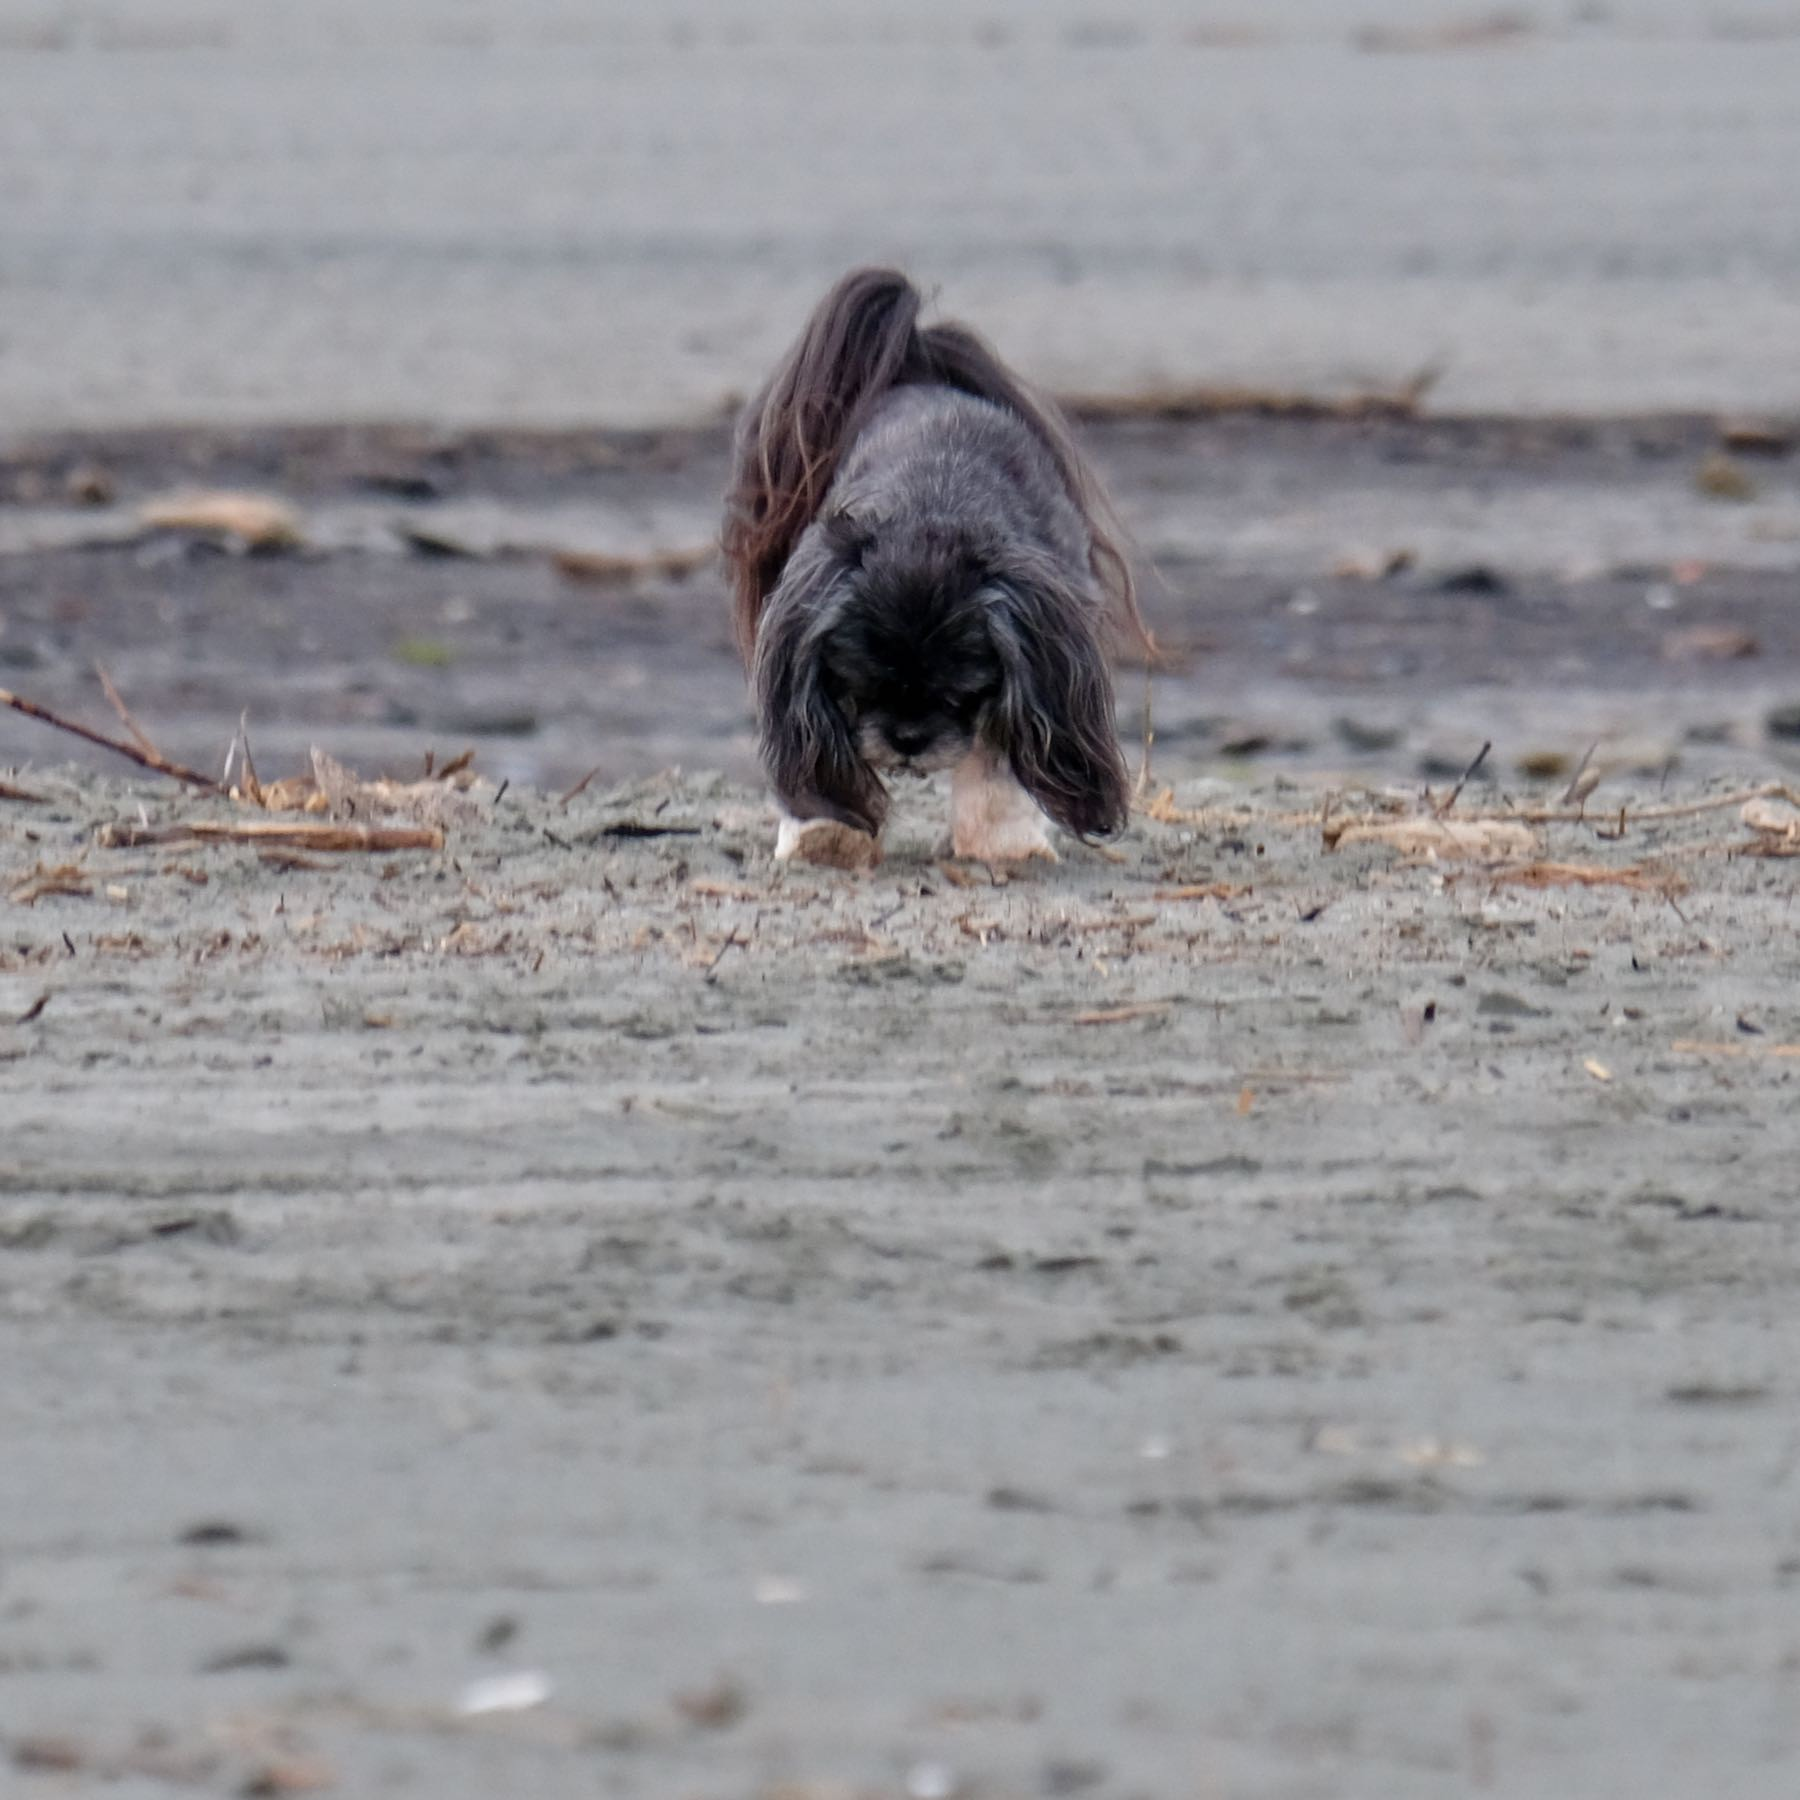 Small black dog looking down at the sand.